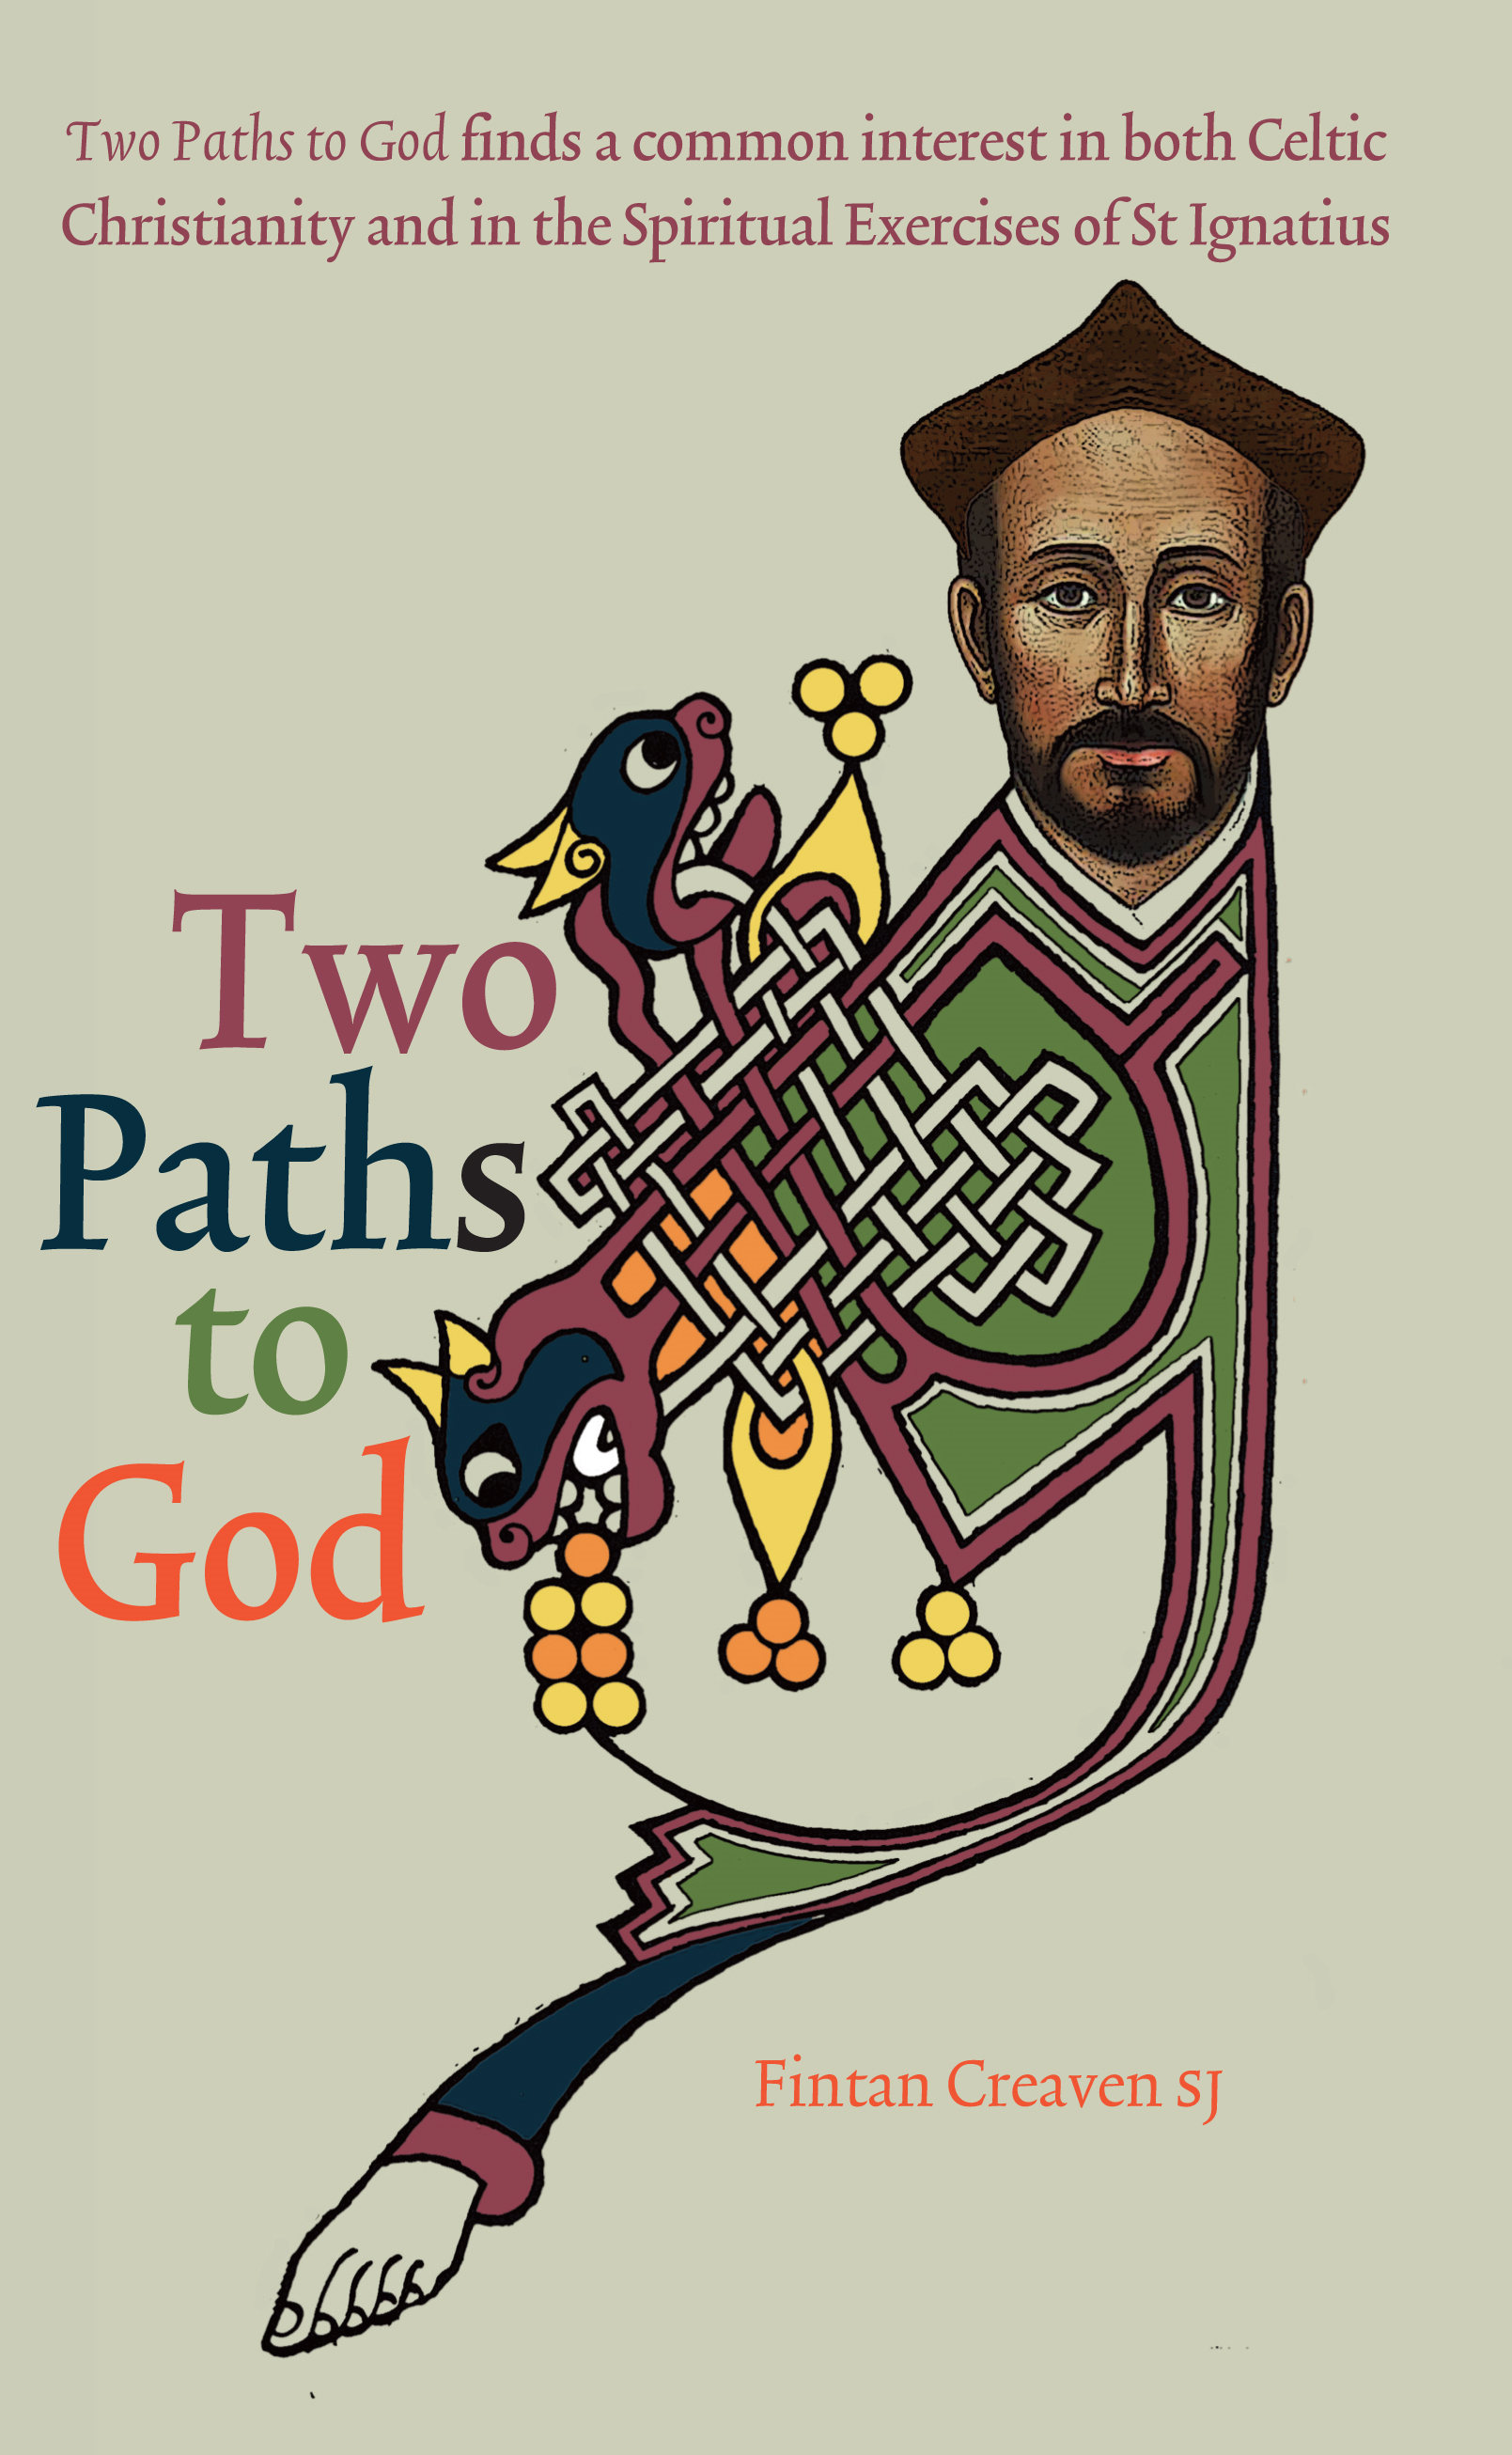 Two Paths to God: Two Paths to God finds a common interest in both Celtic Christianity and in the Spiritual Exercises of St Ignatius